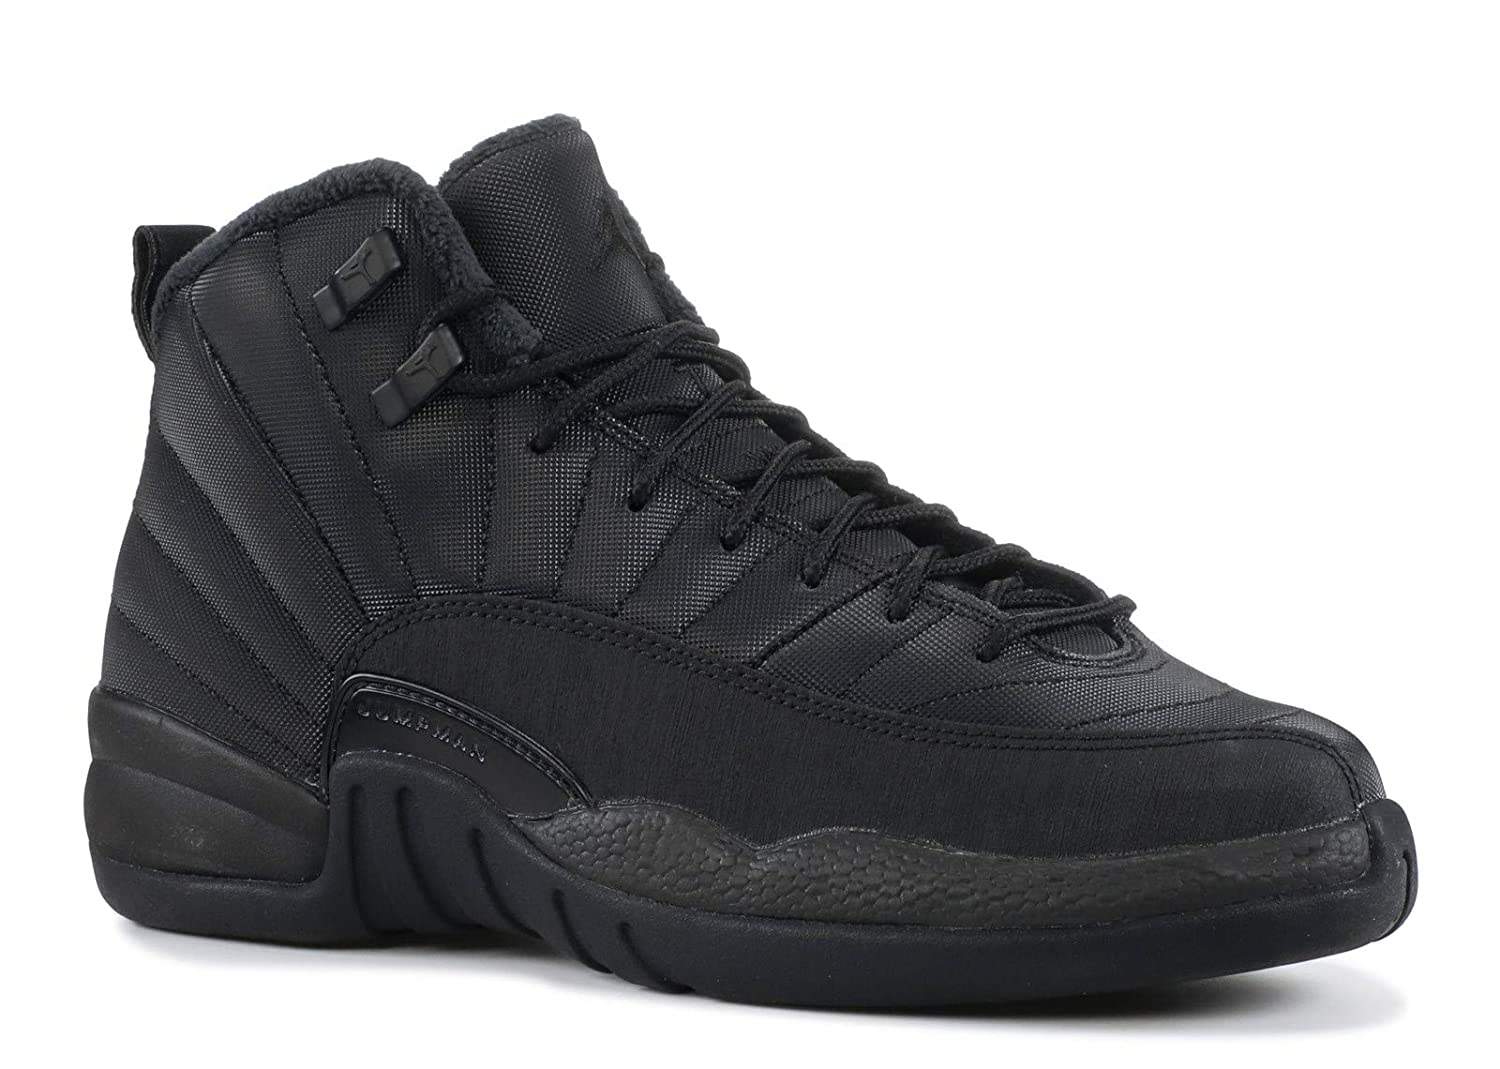 new style a2723 a0fe0 Amazon.com | AIR Jordan 12 Retro WNTR (GS) 'Triple Black ...